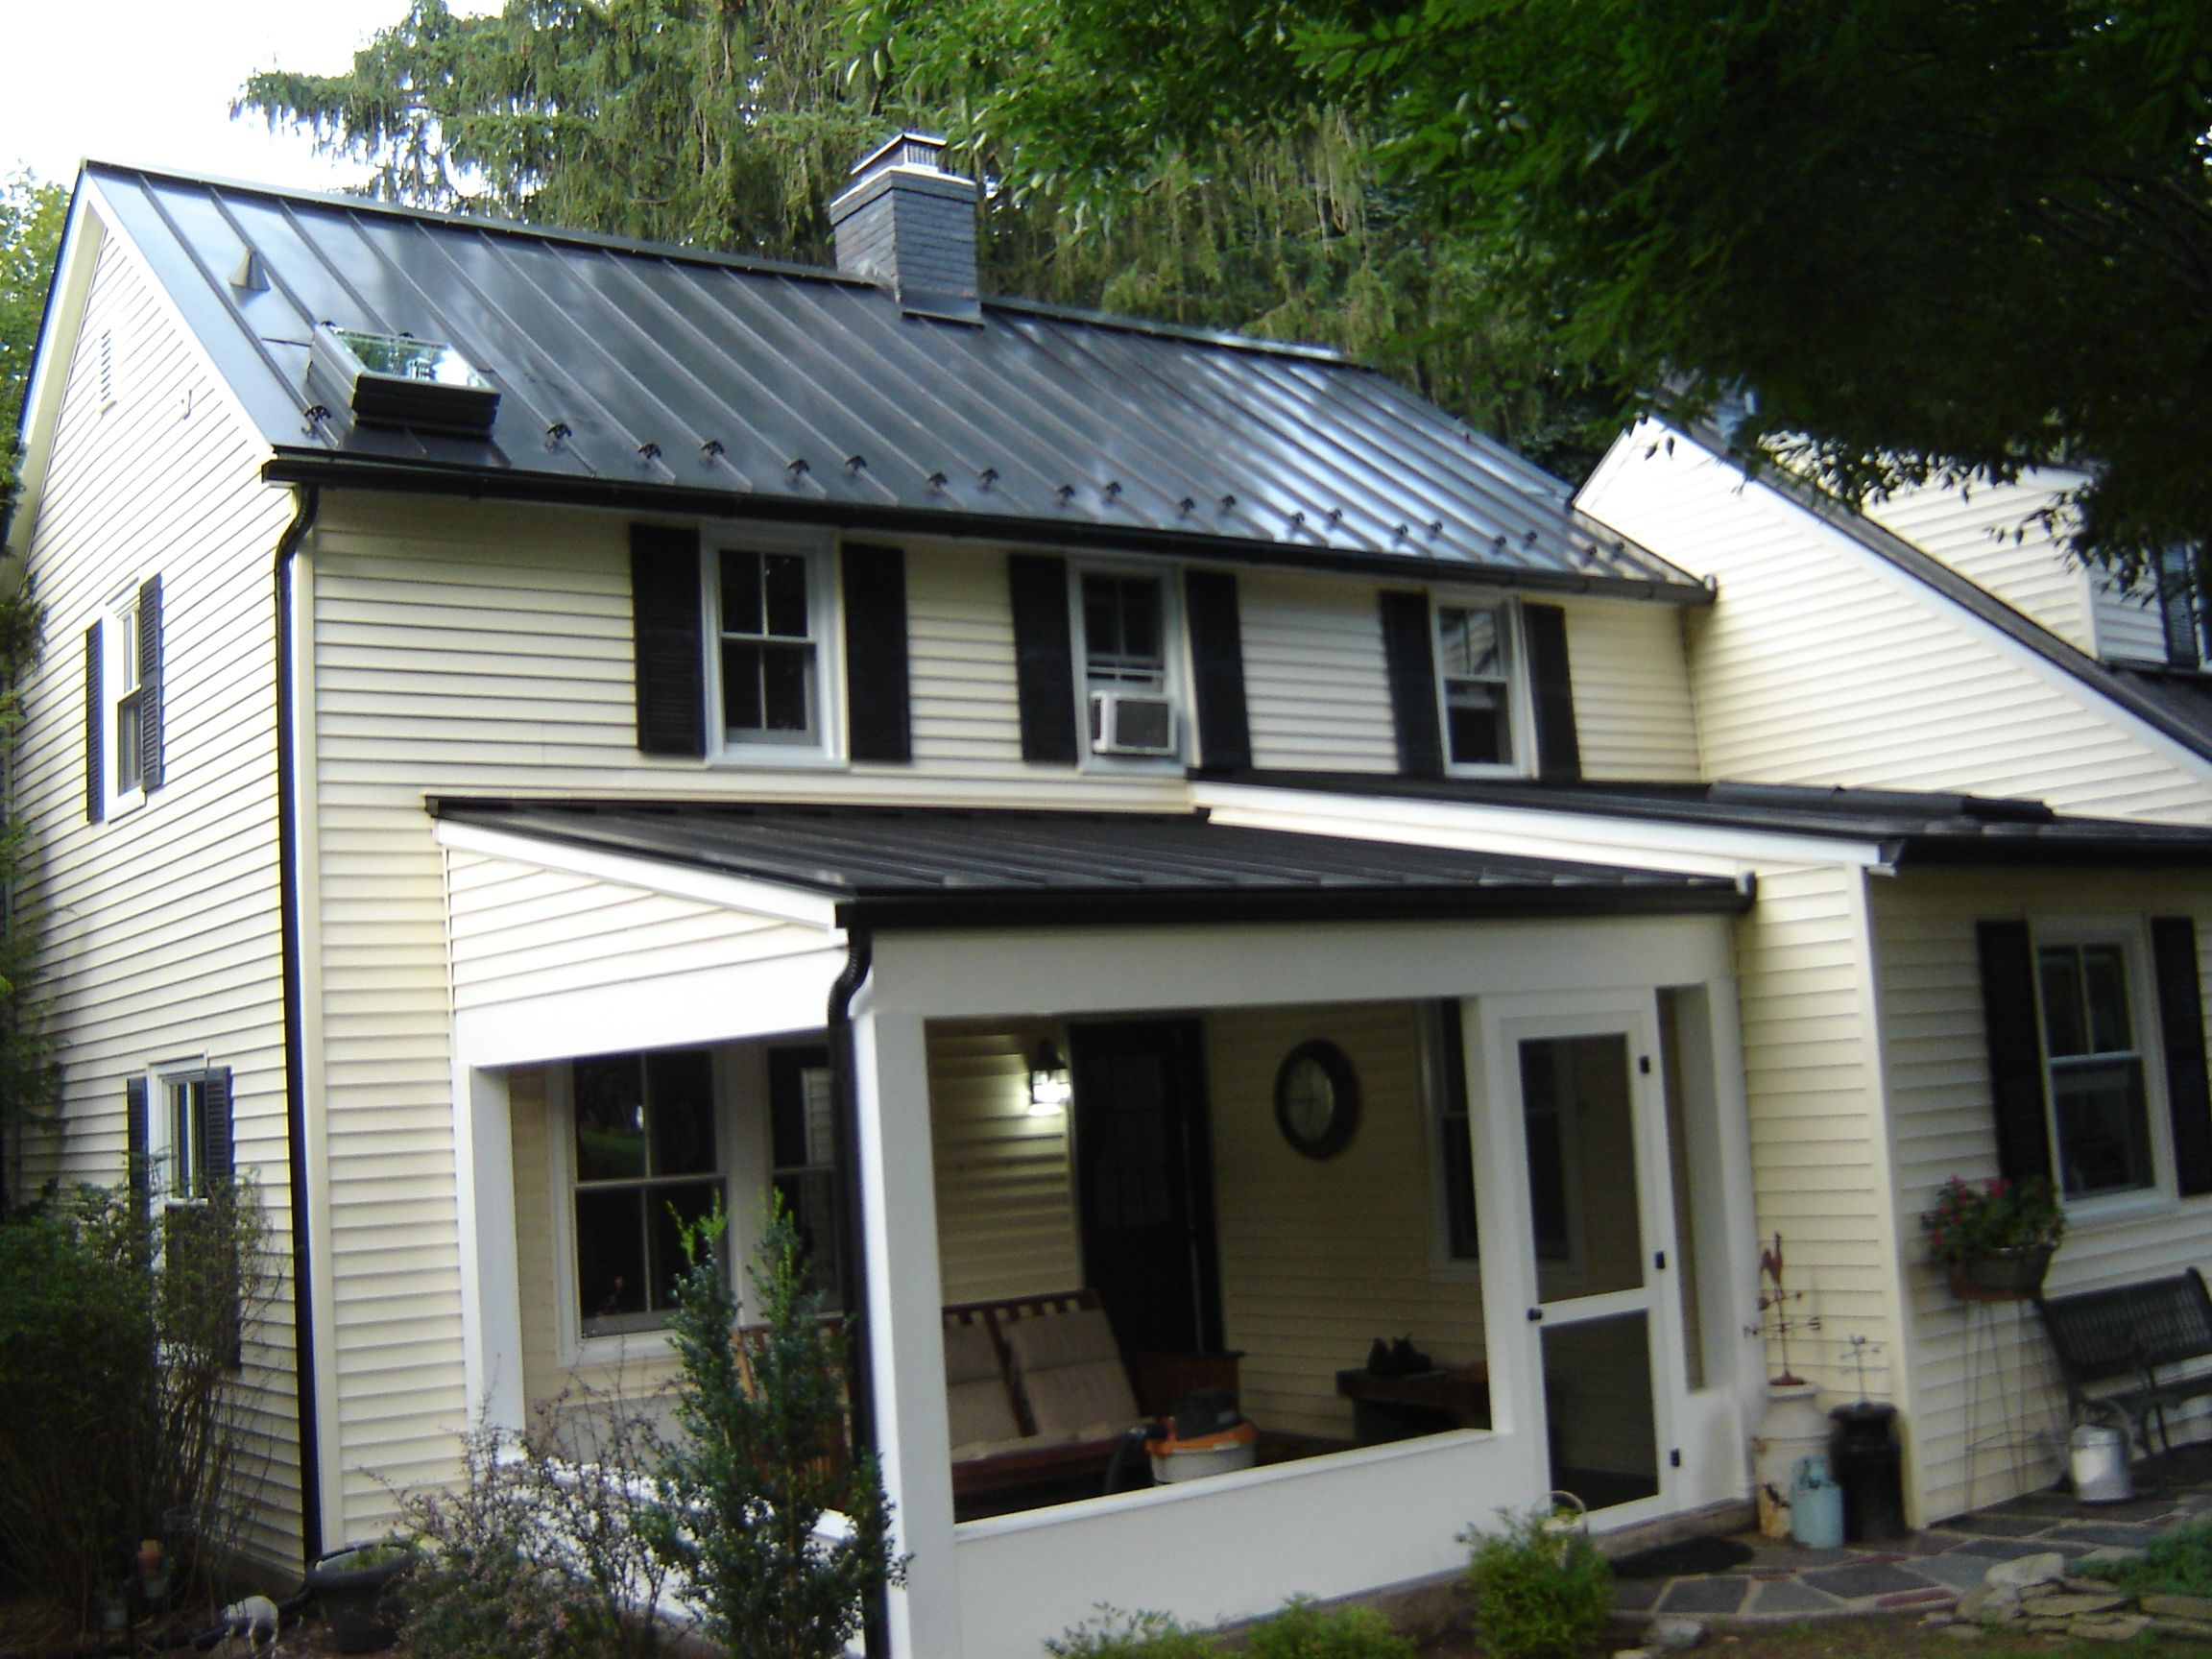 Matte Black Standing Seam Metal Roof | Black metal roof, Architectural  shingles roof, Metal roof houses